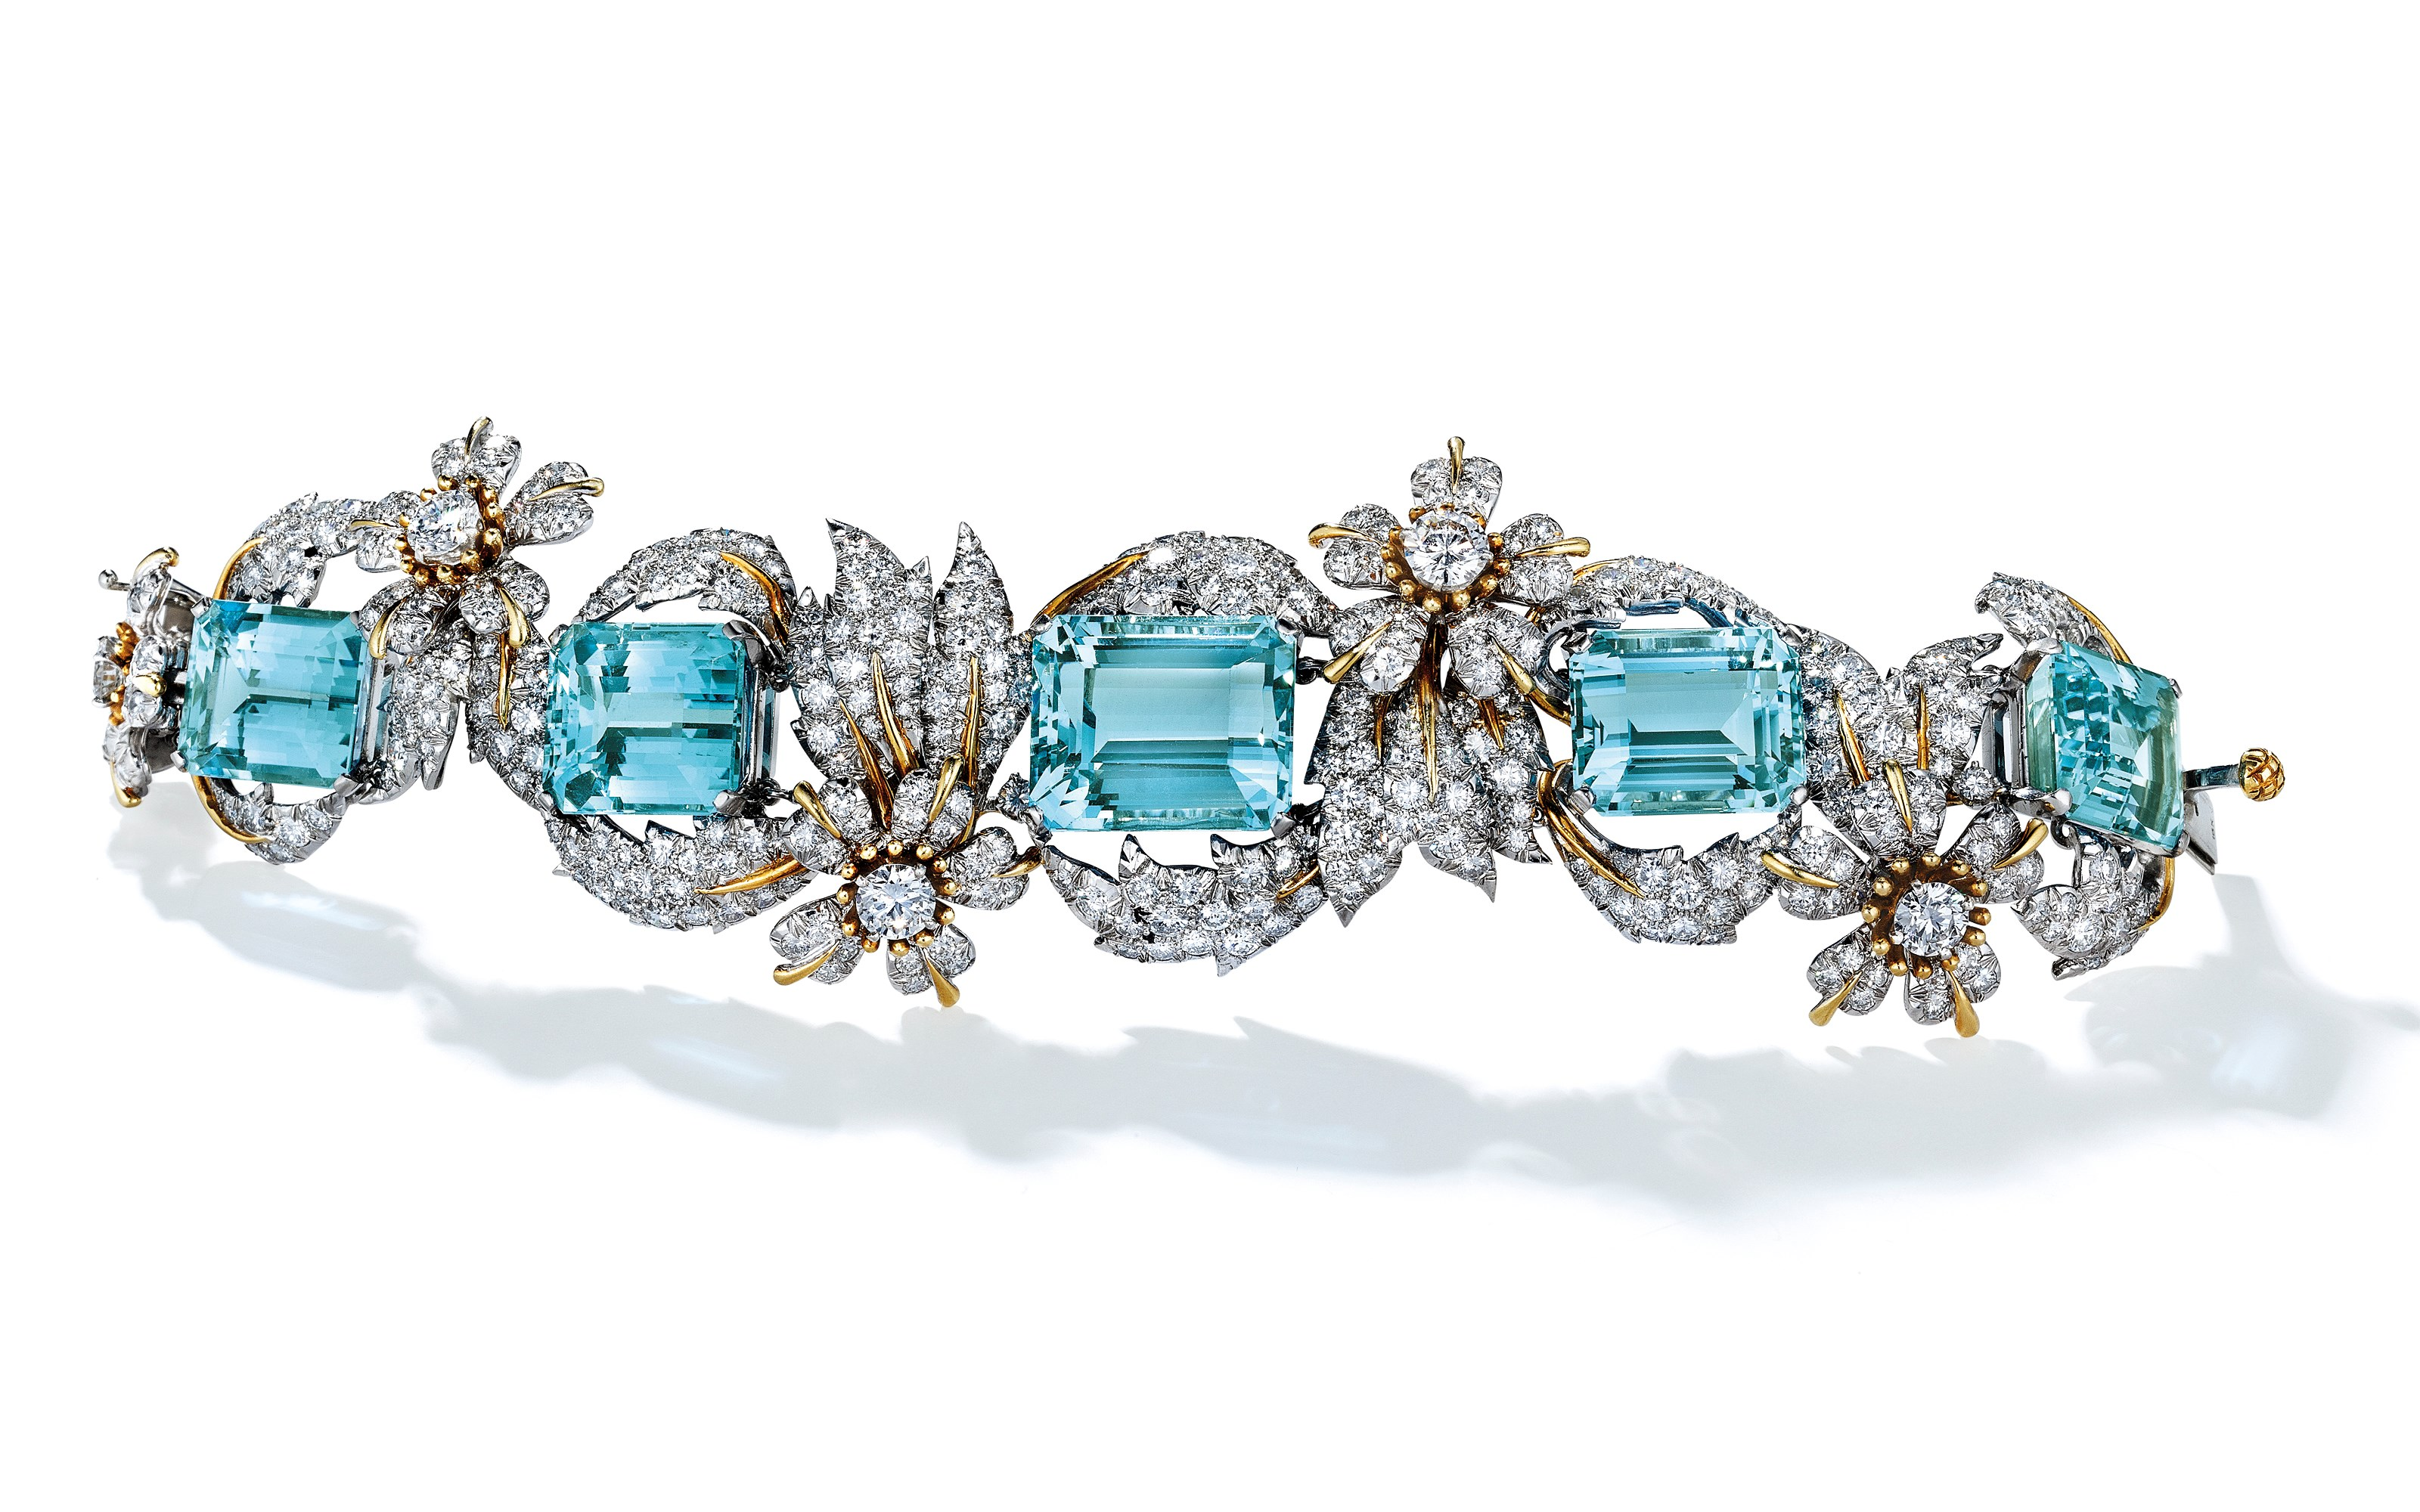 Magnificent Jewels & The Colle auction at Christies